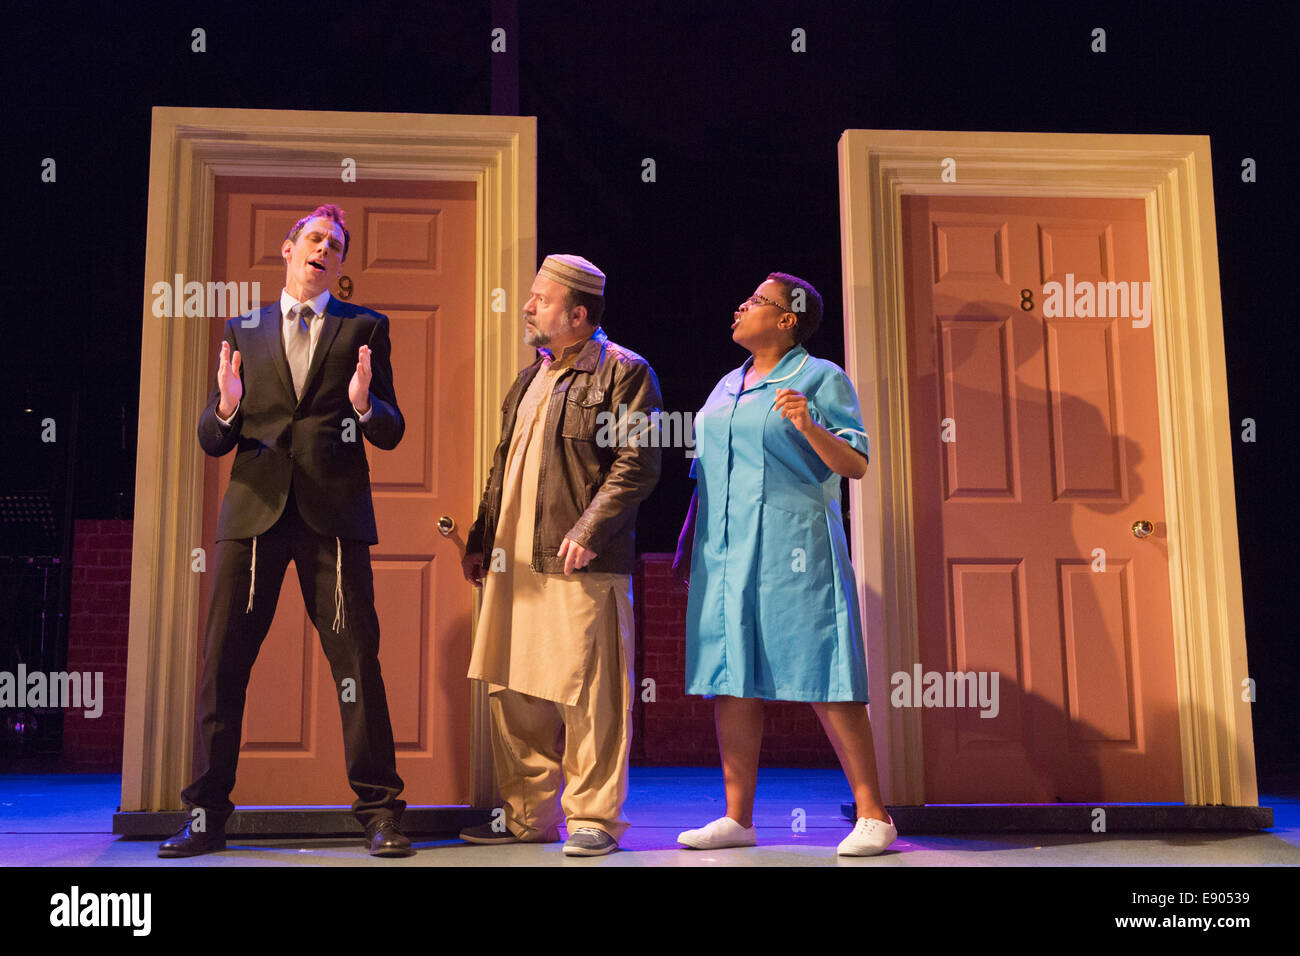 Photocall For The Musical The Infidel By David Baddiel Steven Serlin Kev Orkian And Melanie Marshal